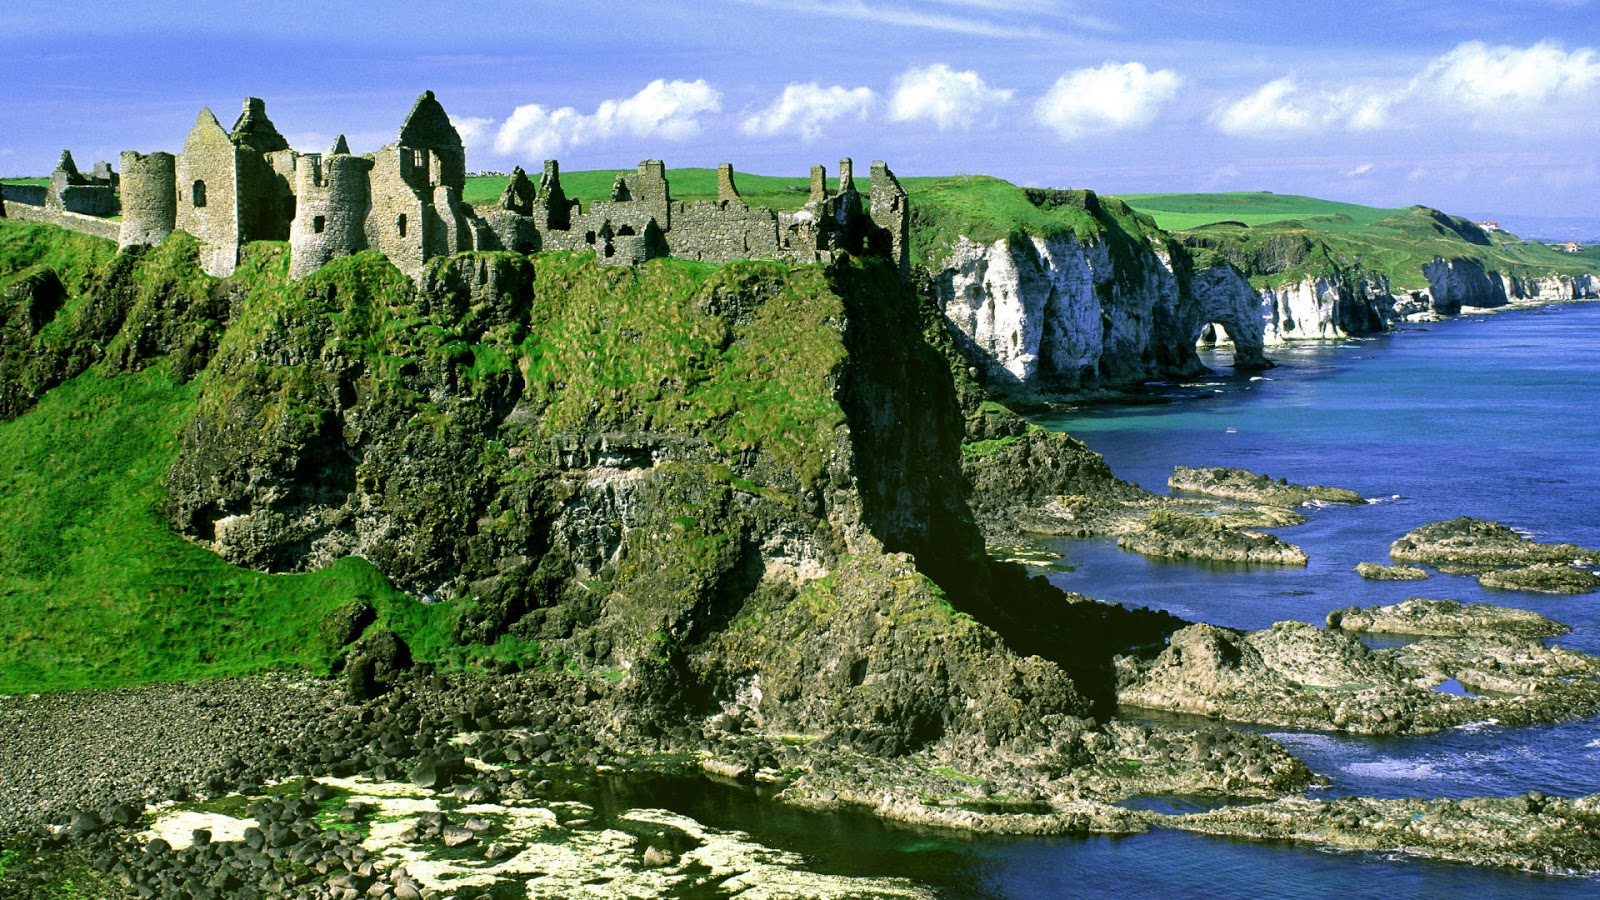 HD Wallpapers Desktop Ireland Country HD DeskTop Wallpapers 1600x900